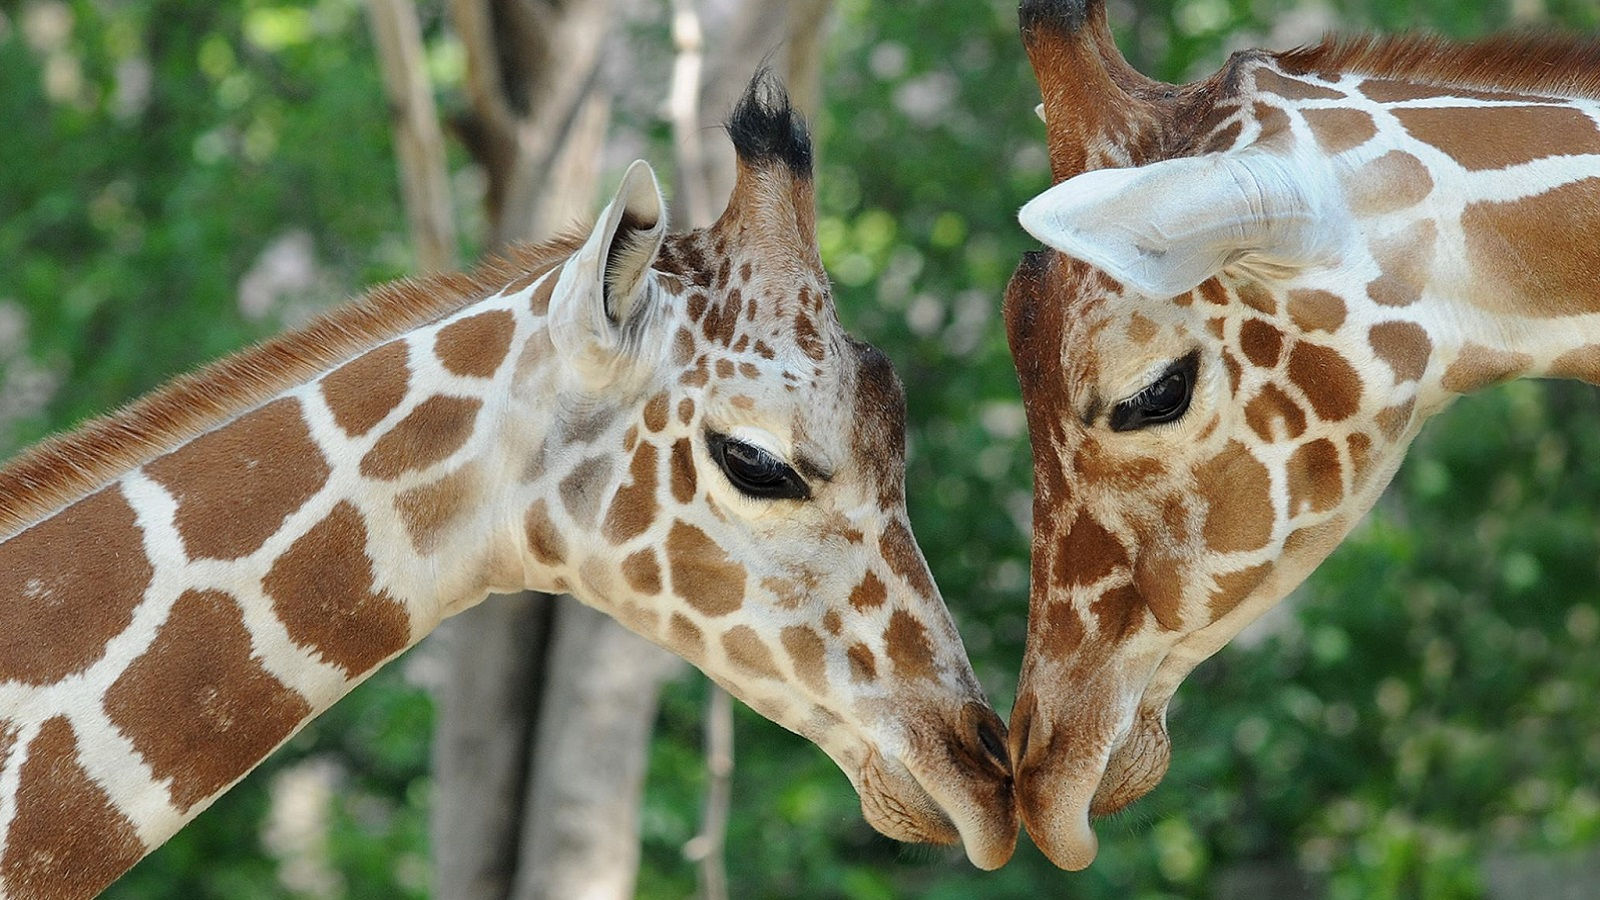 Giraffes at Brookfield Zoo